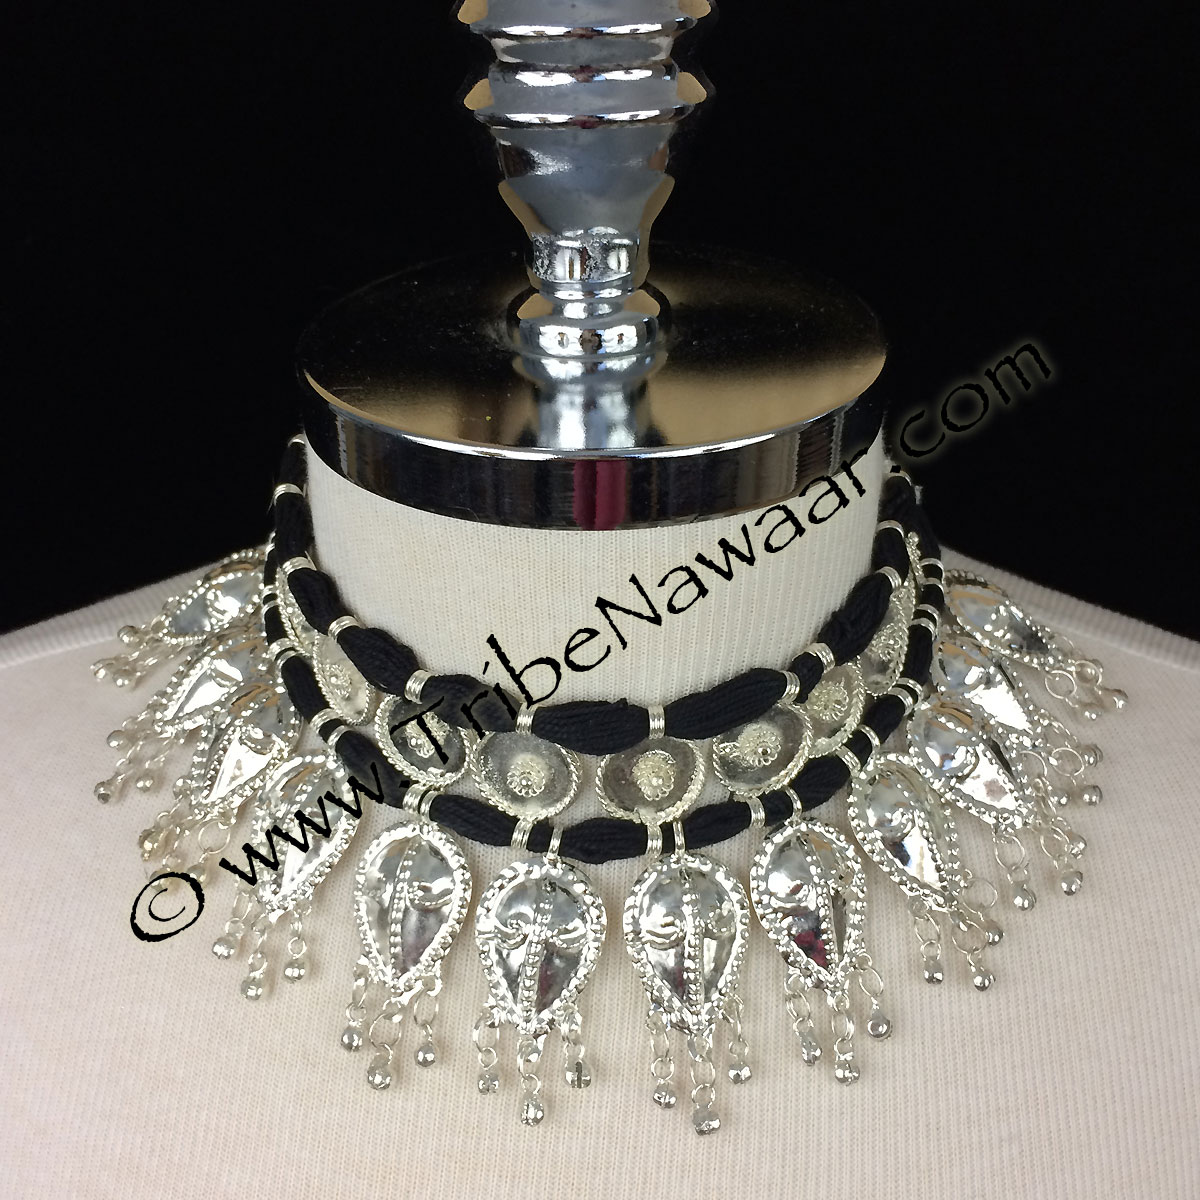 Tribe Nawaar's classic Odissi costume necklace